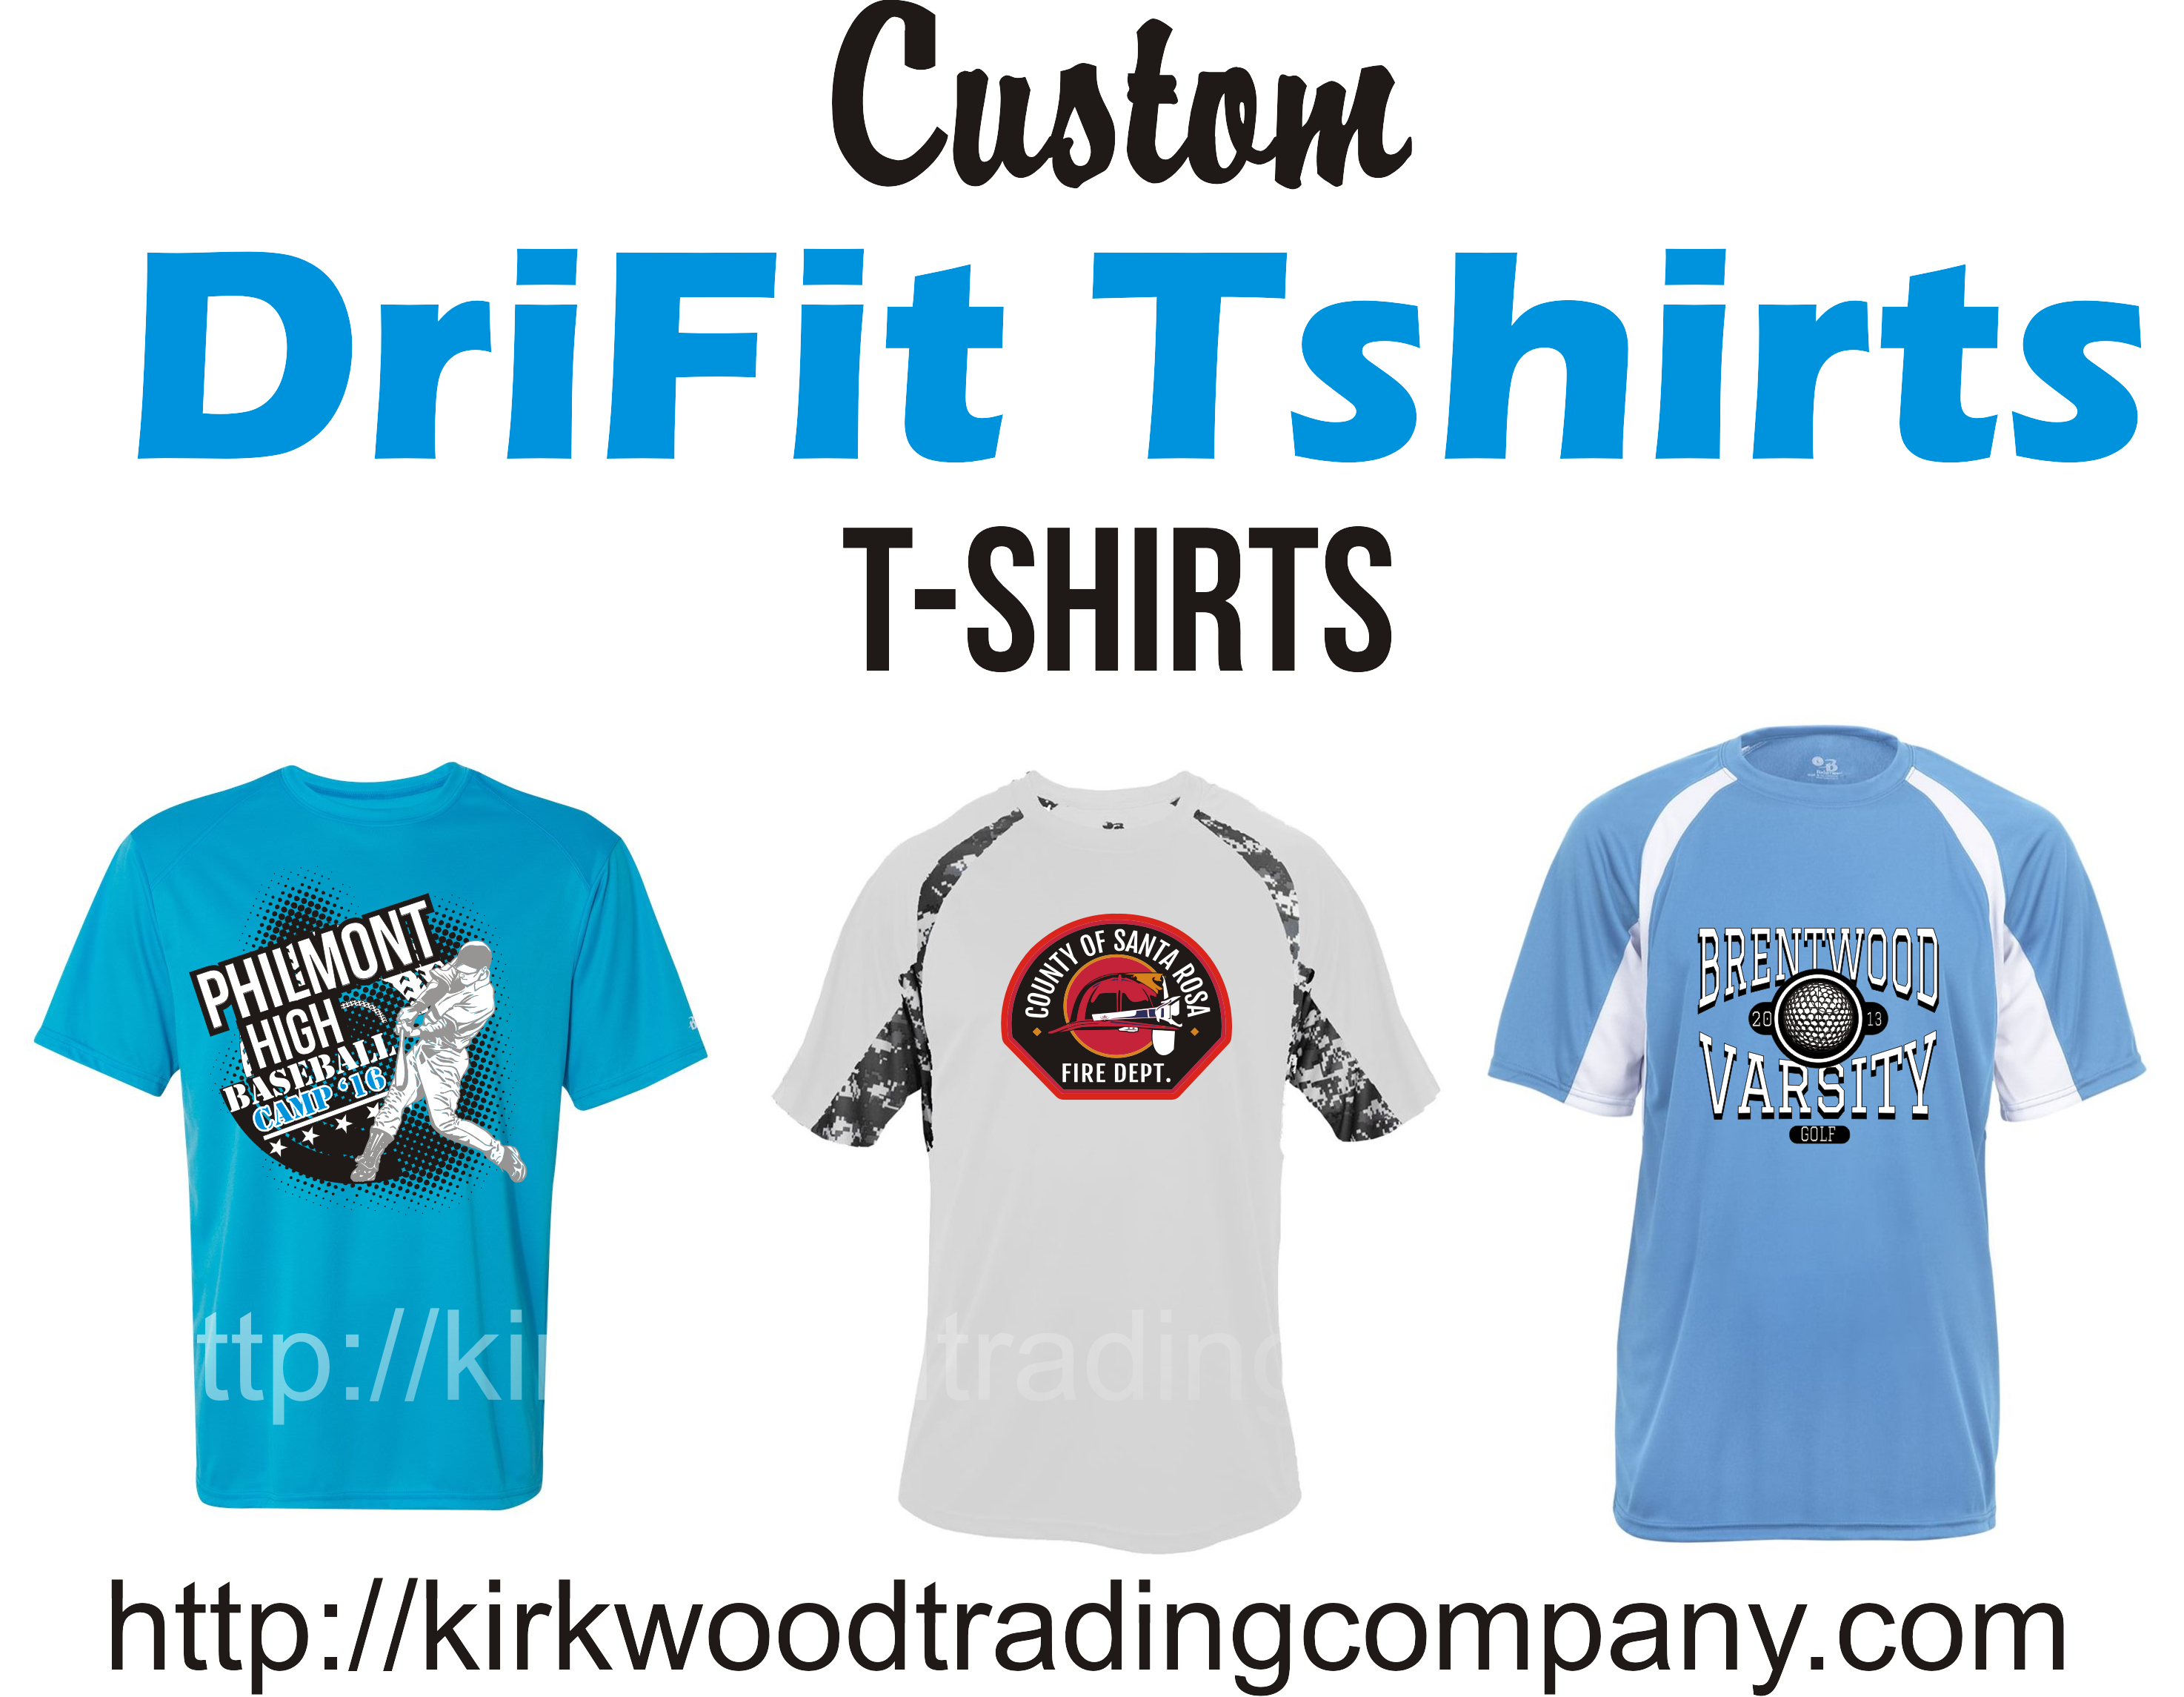 custom dri fit tshirts in St. Louis - Kirkwood Trading Co